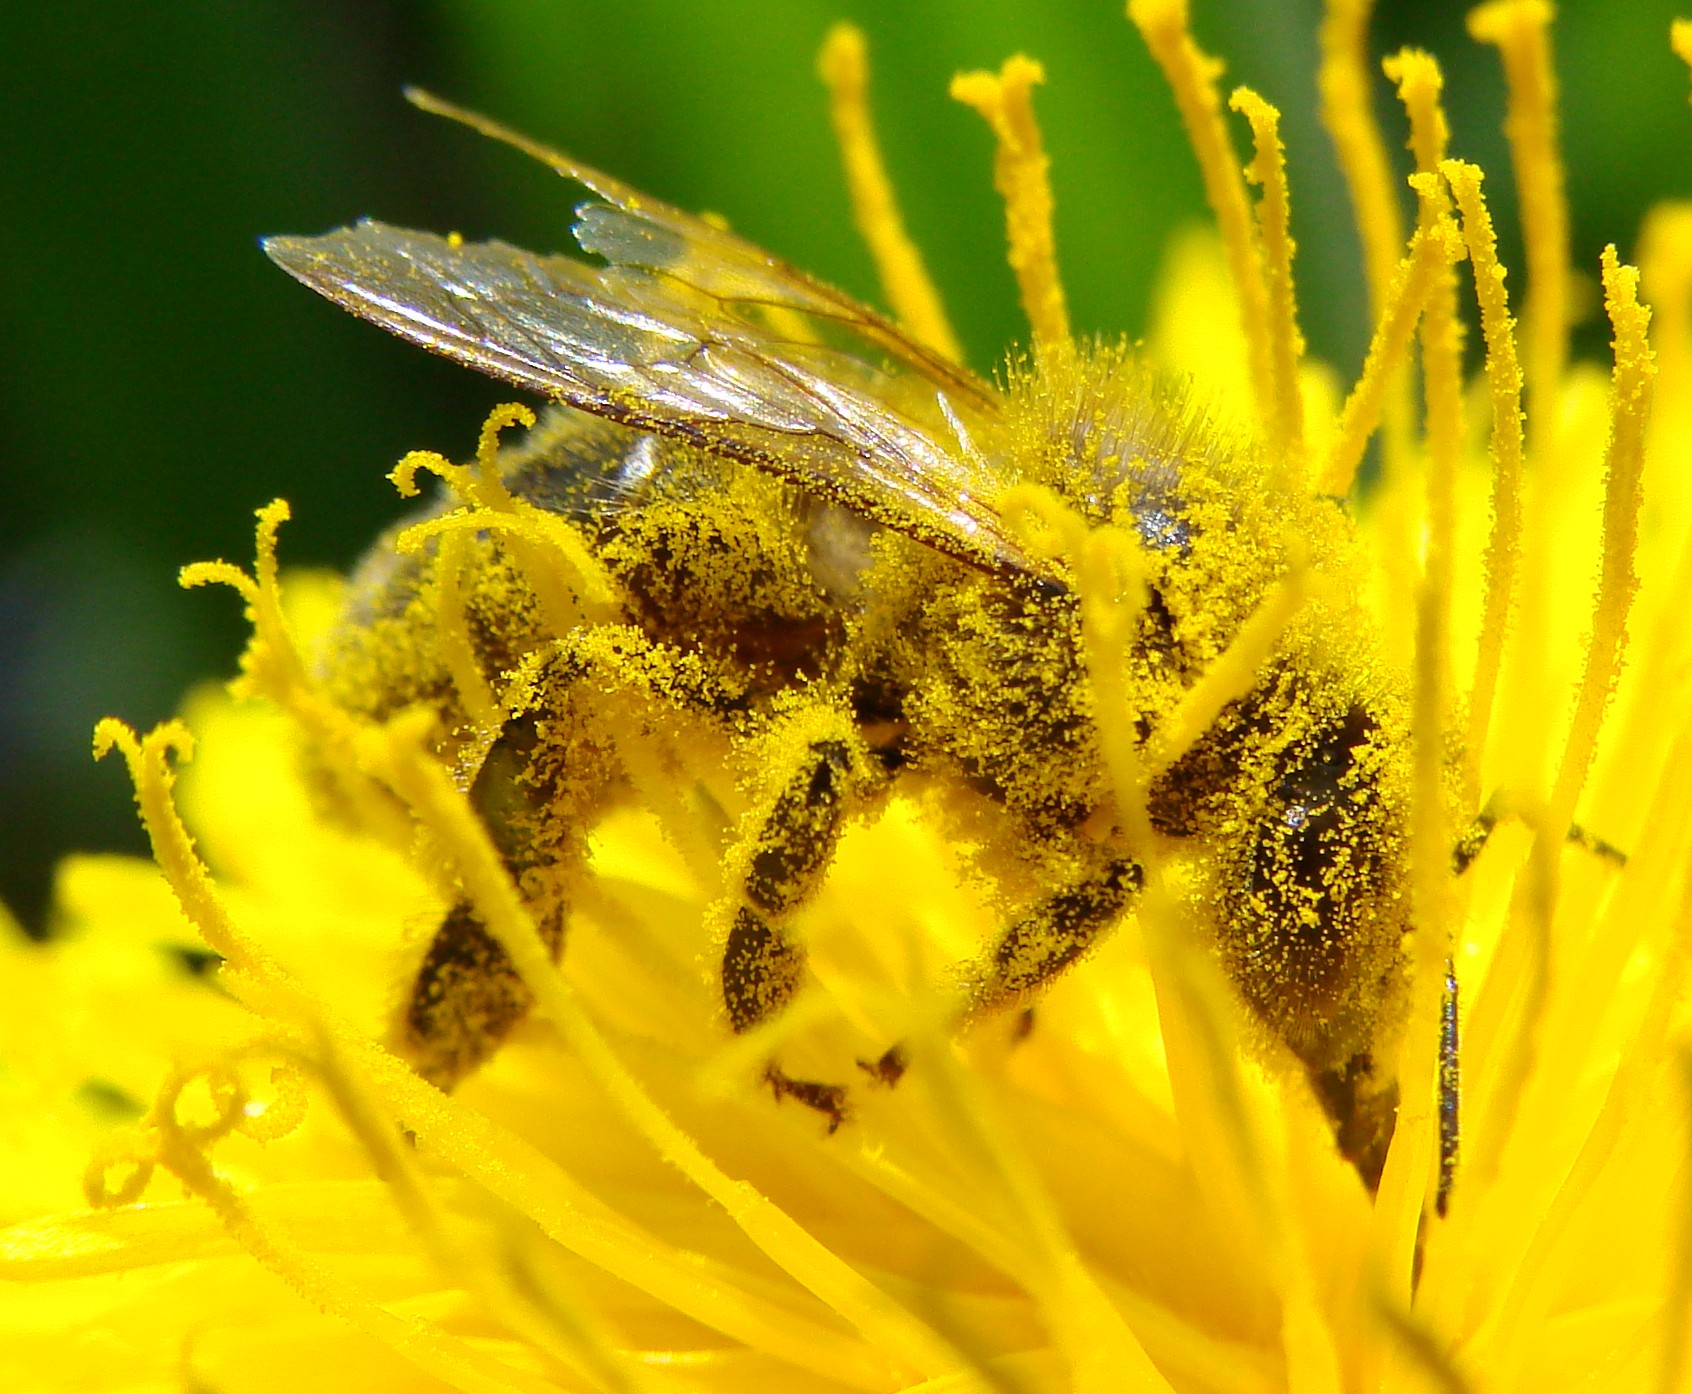 The crucial role of pollinators in the insect world